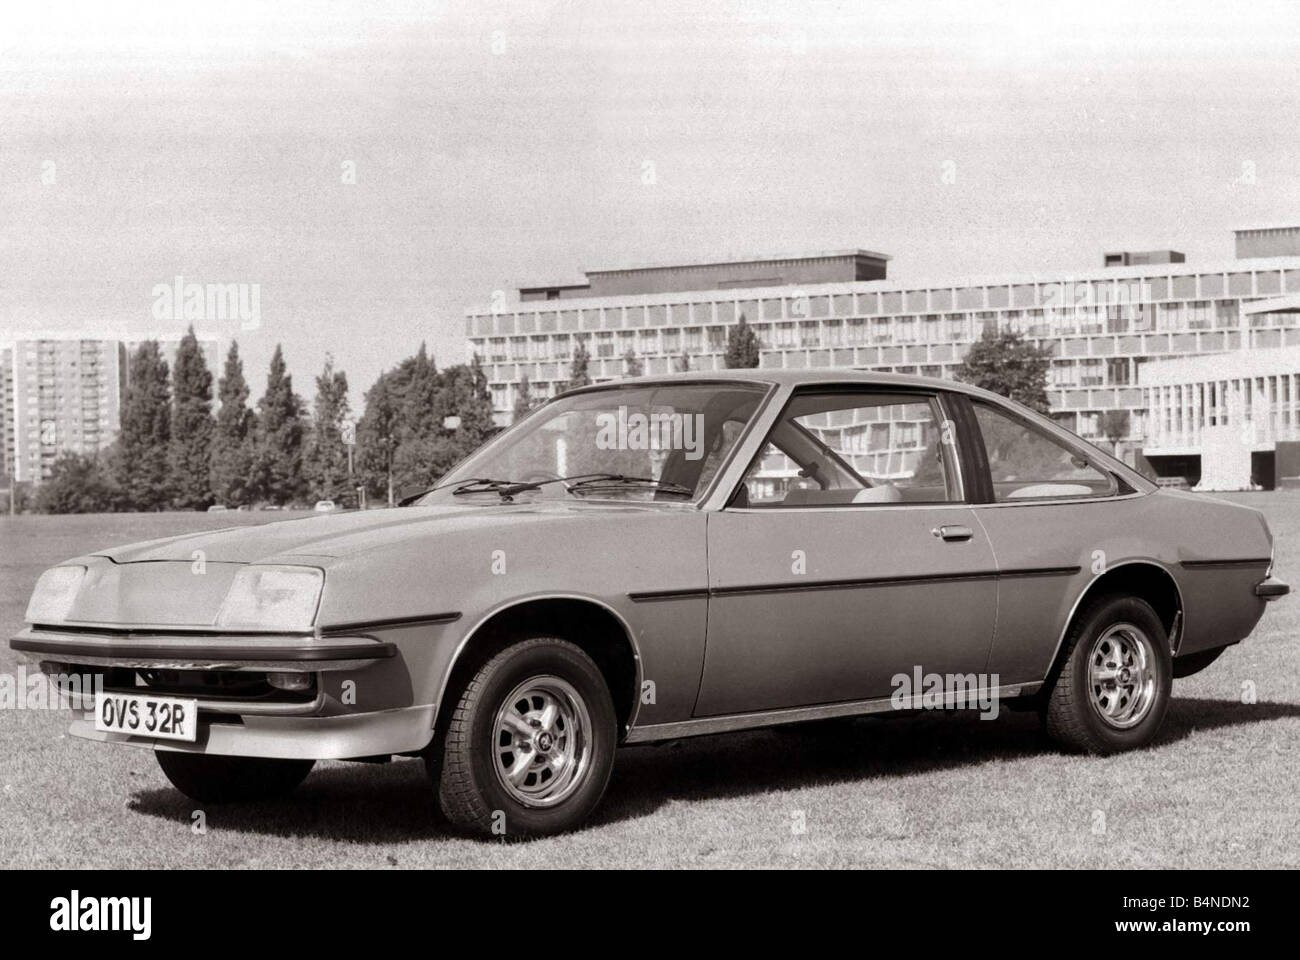 Diamond Toyota Lebanon Pa Car Dealer In Lebanon Manta >> Vauxhall Cars Stock Photos Vauxhall Cars Stock Images Alamy